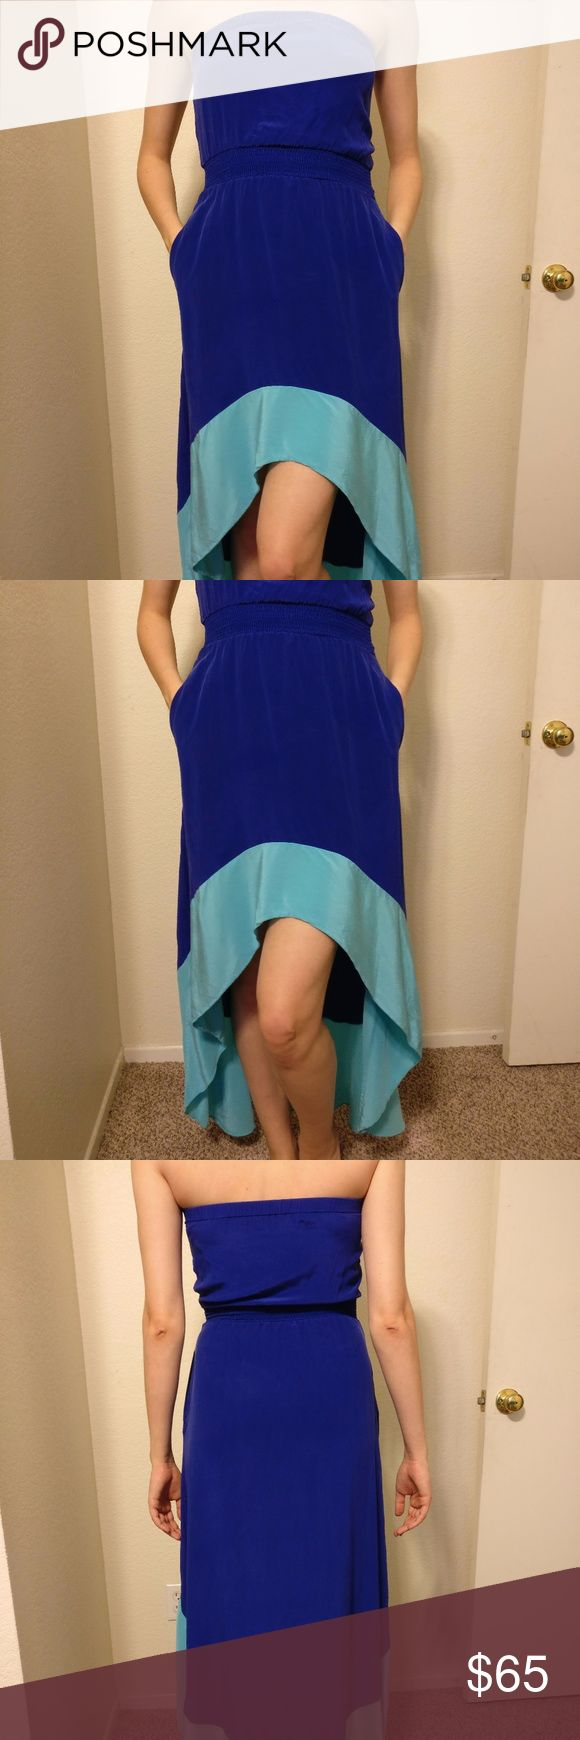 """Jay Godfrey Deep Blue Silk Maxi Dress Jay Godfrey Deep Blue Silk Colorblock Strapless Maxi Dress with Pockets, Size 0  Gently Pre-Owned. Great Condition. No holes, rips or stains.  Top elastic band is 13 1/2"""" and stretches to 20 1/2 """" Waist elastic band is 9"""" and stretches to the 15"""" Front length: 27"""" Back length: 50""""  If there are any questions, don't hesitate to ask. Thank you. Jay Godfrey Dresses Maxi"""